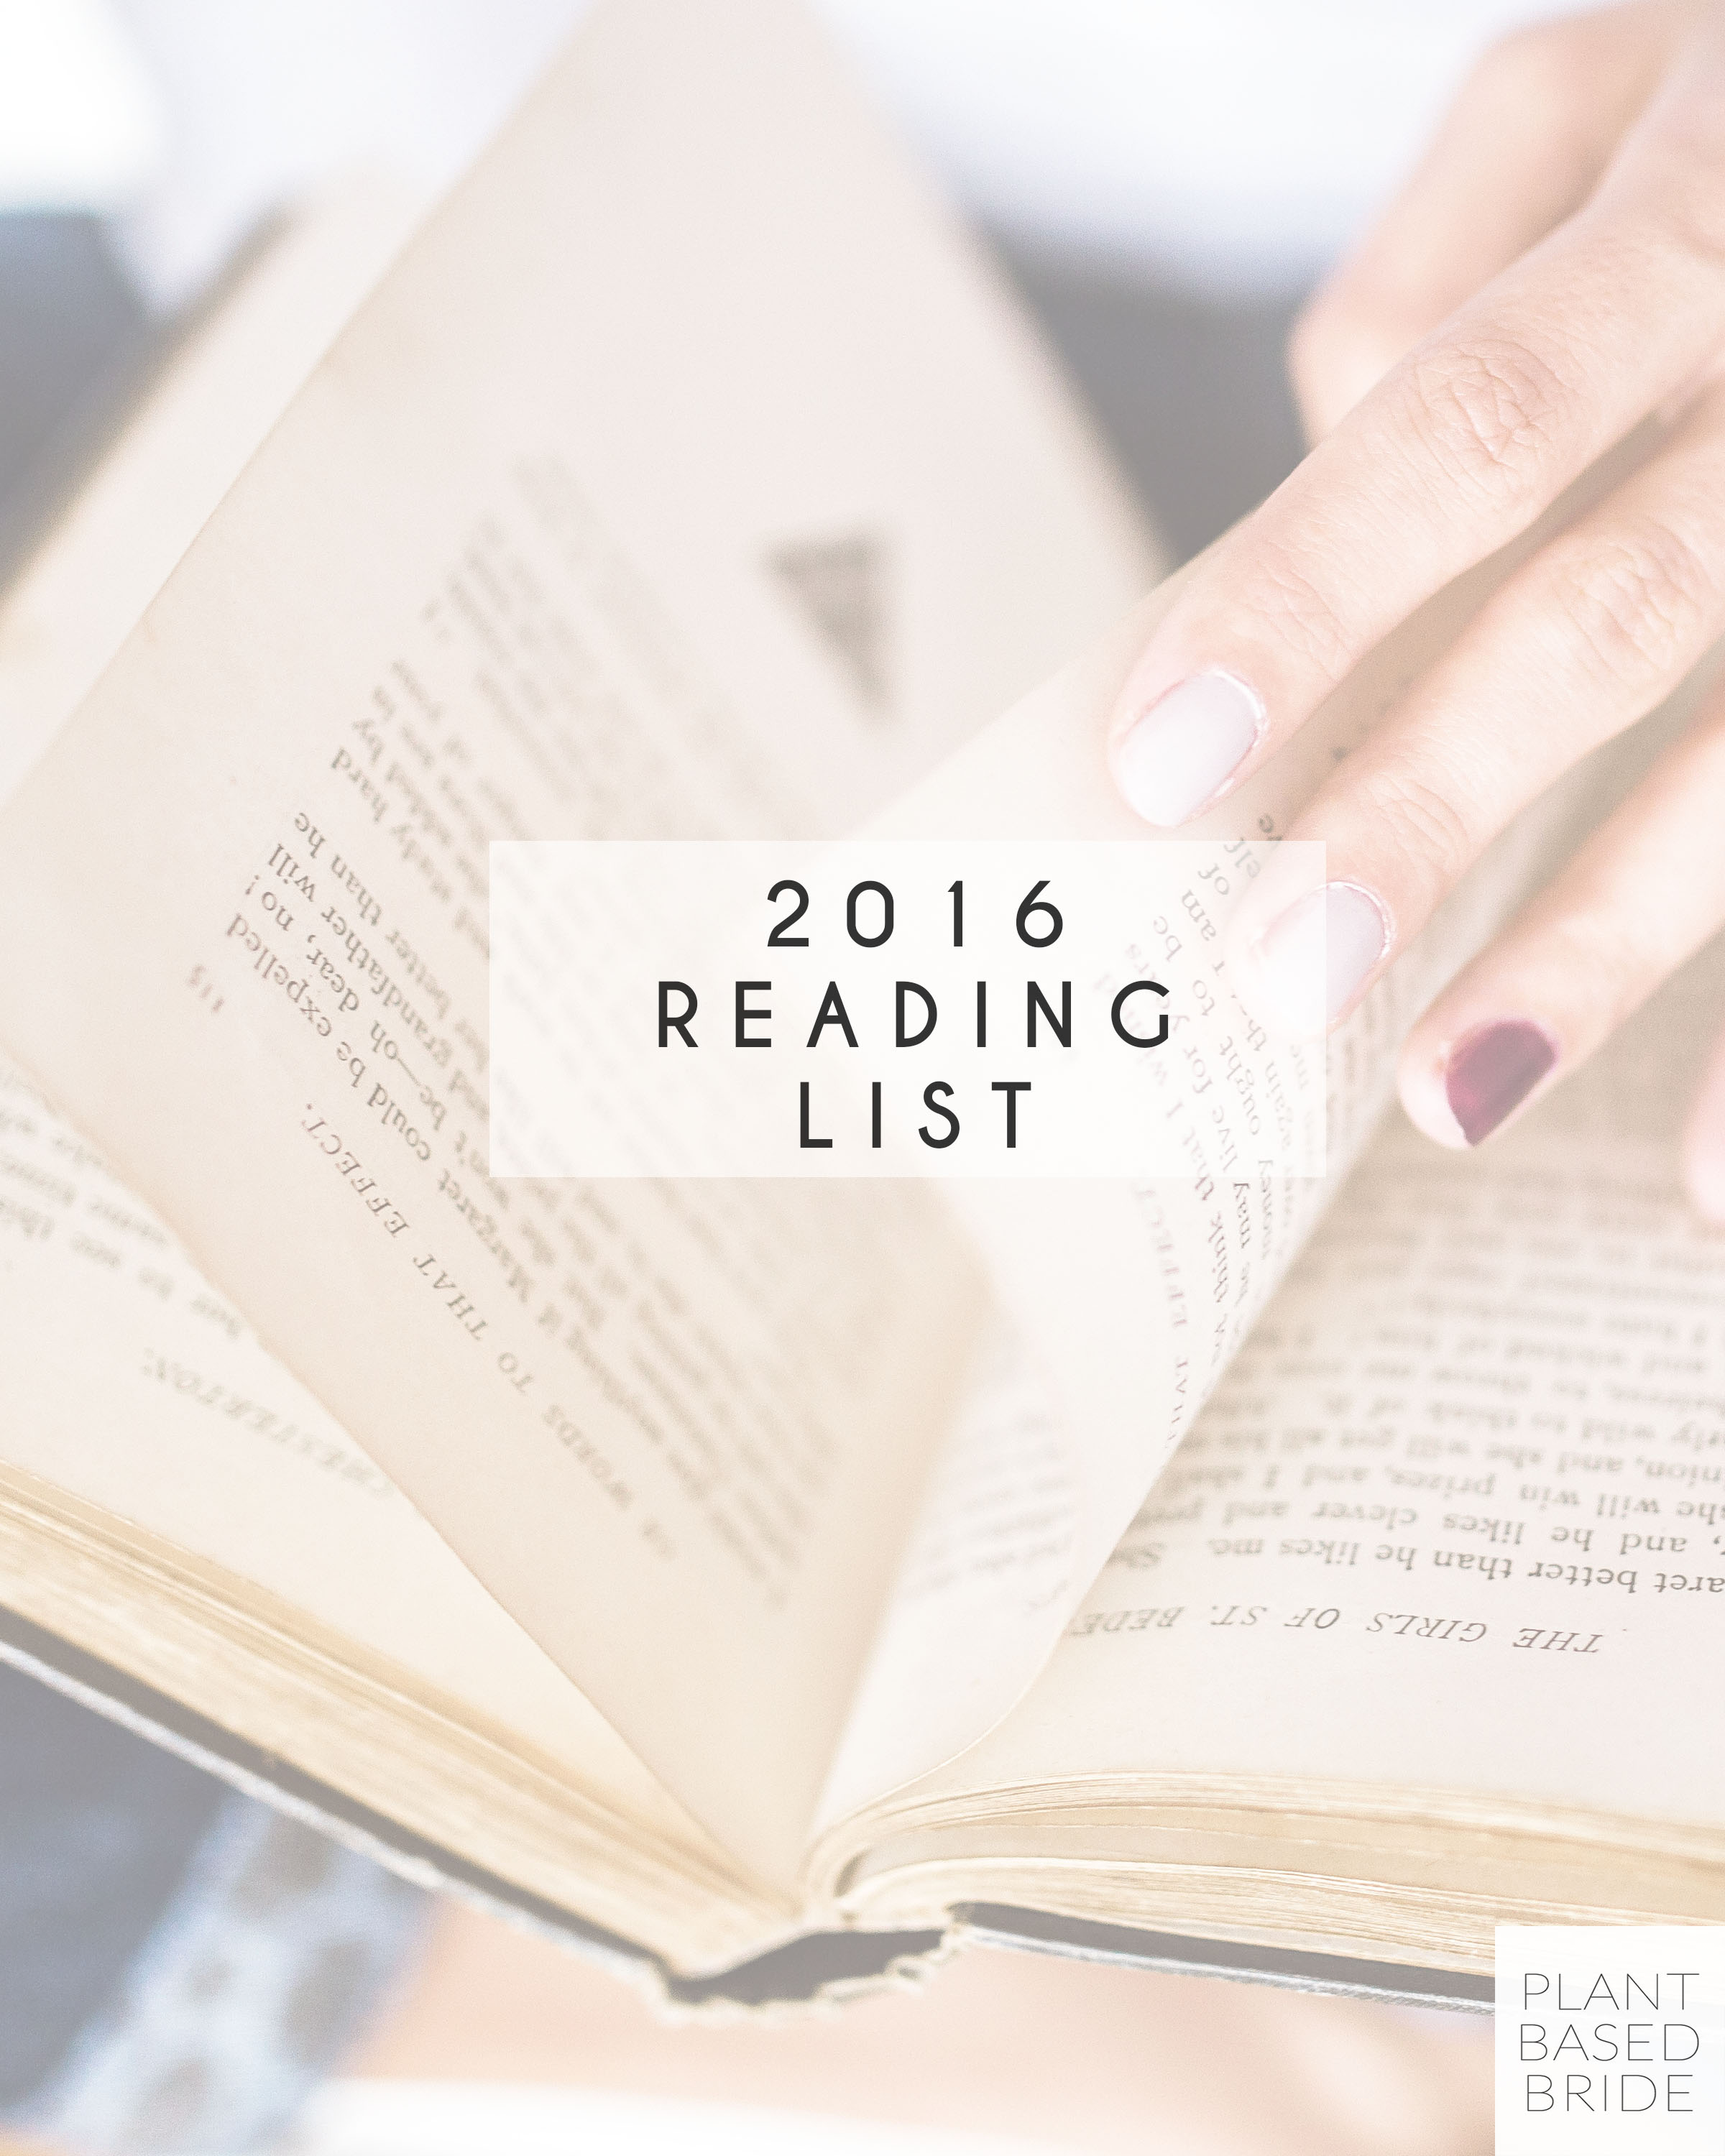 2016 Reading List from Plant Based Bride (and 2015's greatest gems!)